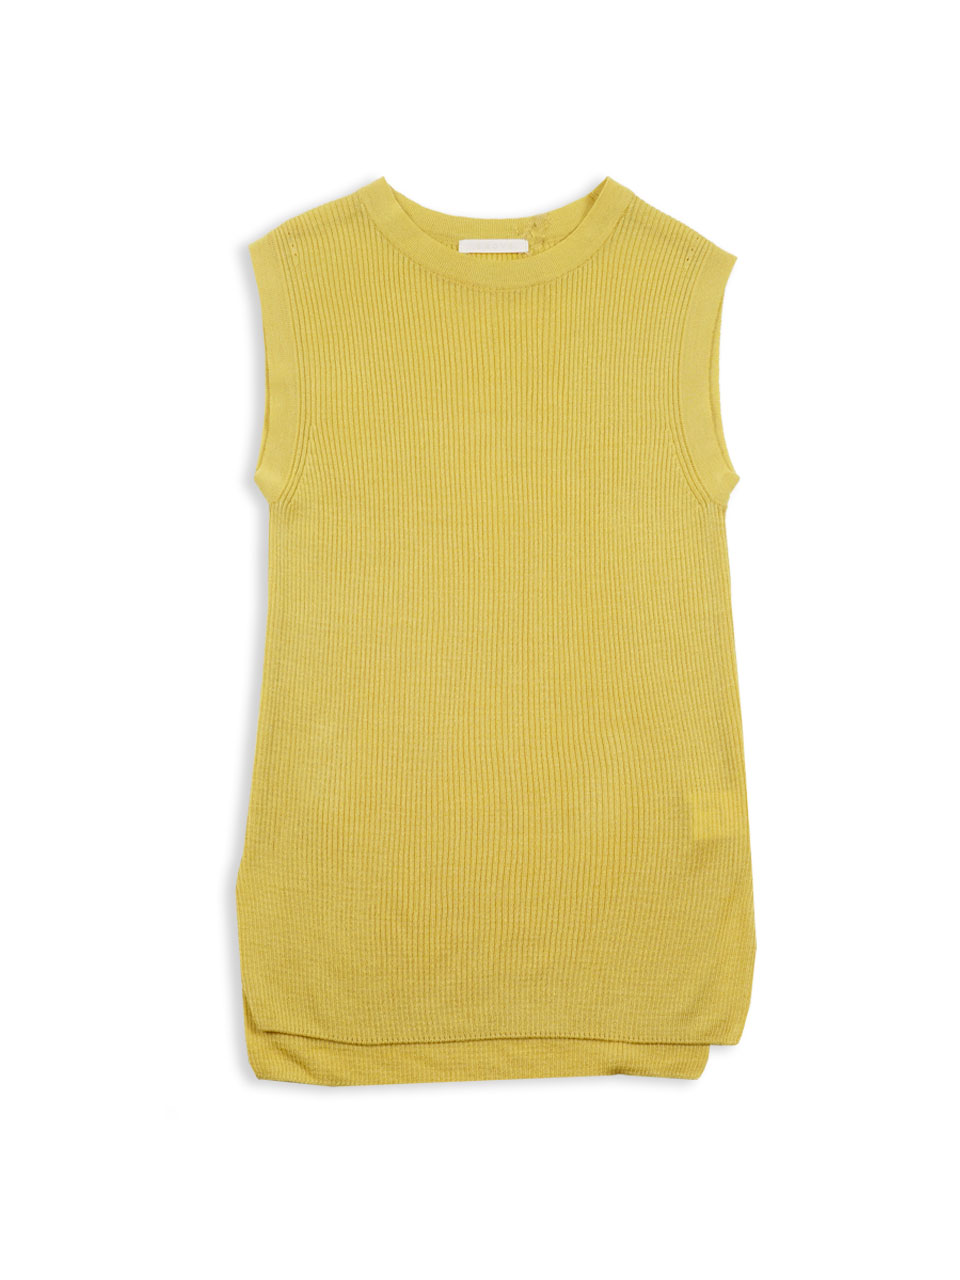 IZY KNIT [YELLOW]